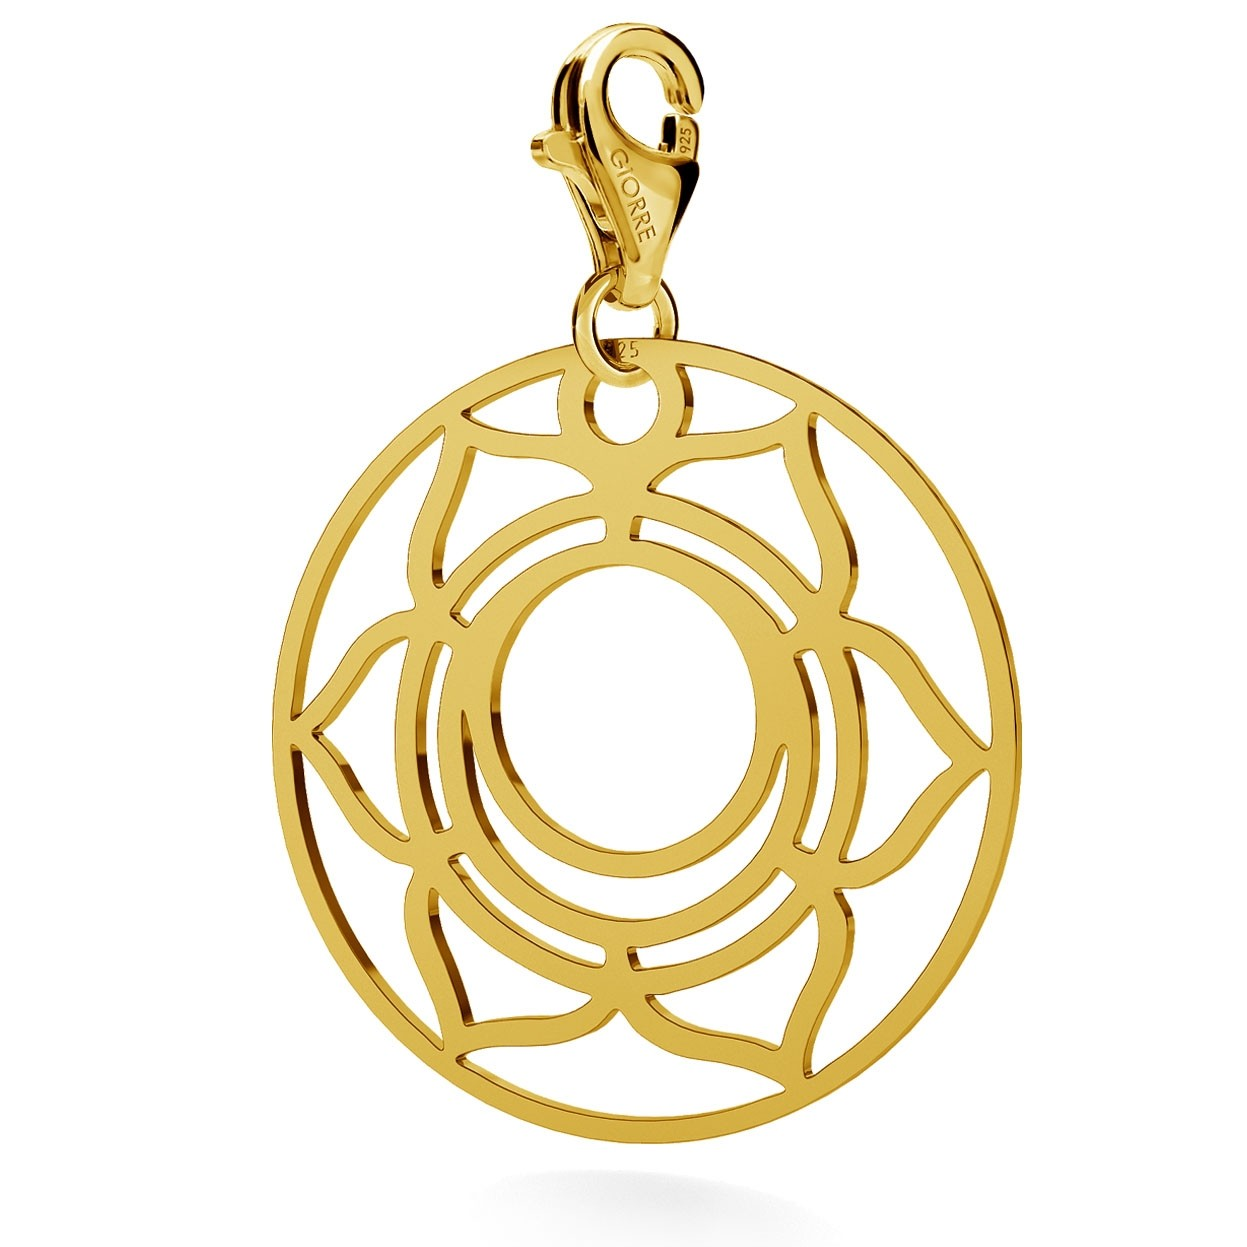 CHARM 73, SACRAL CHAKRA, STERLING SILVER (925) RHODIUM OR GOLD PLATED